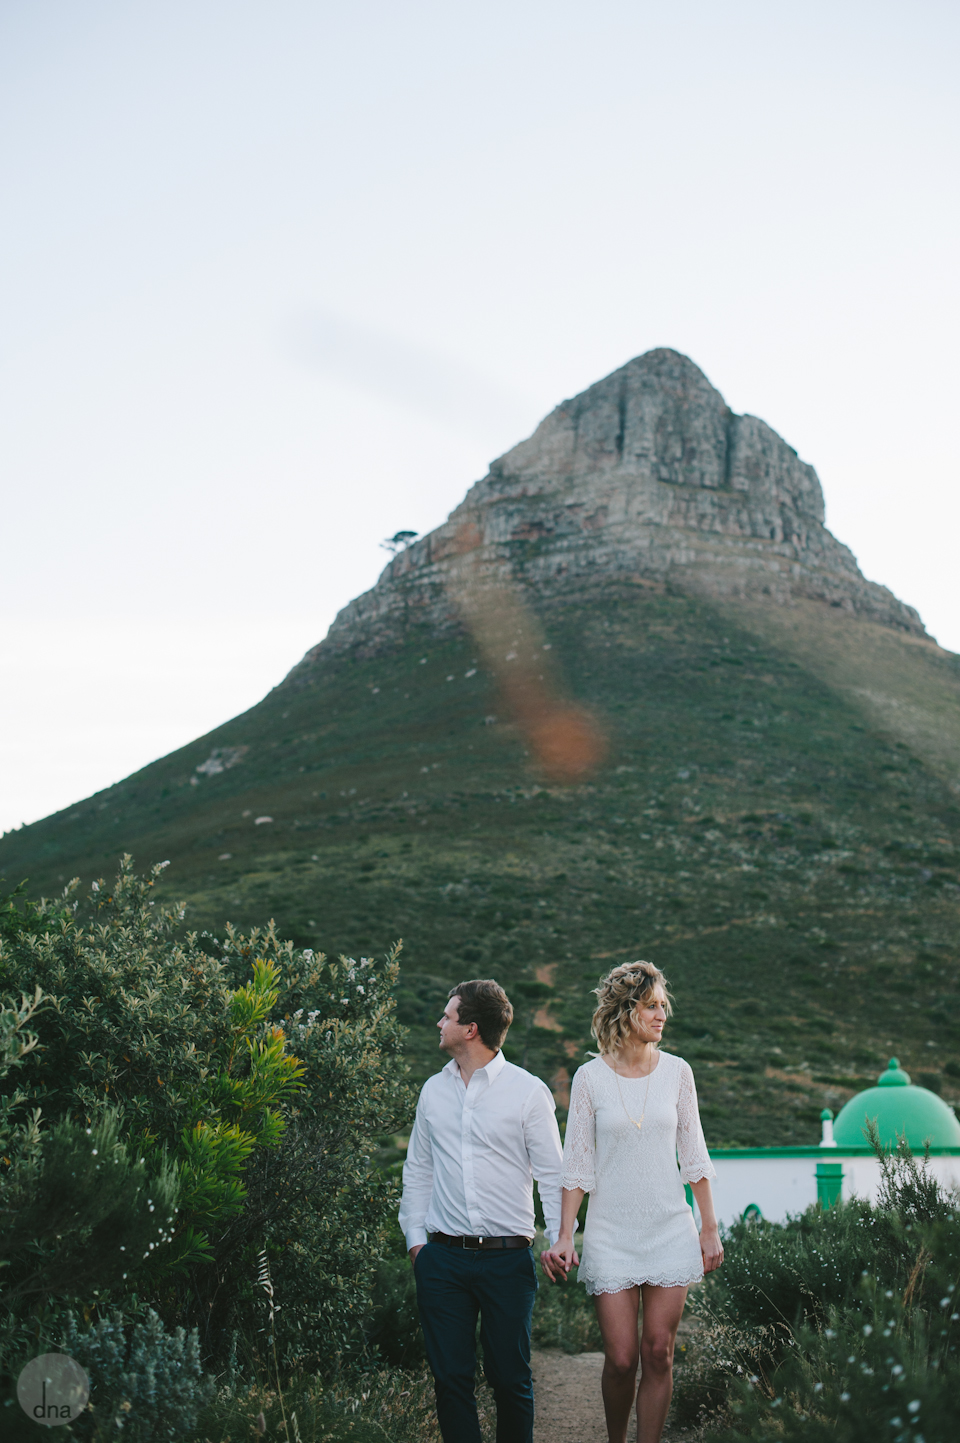 Chrisli and Matt engagement shoot City and Signal Hill Cape Town South Africa shot by dna photographers 144.jpg